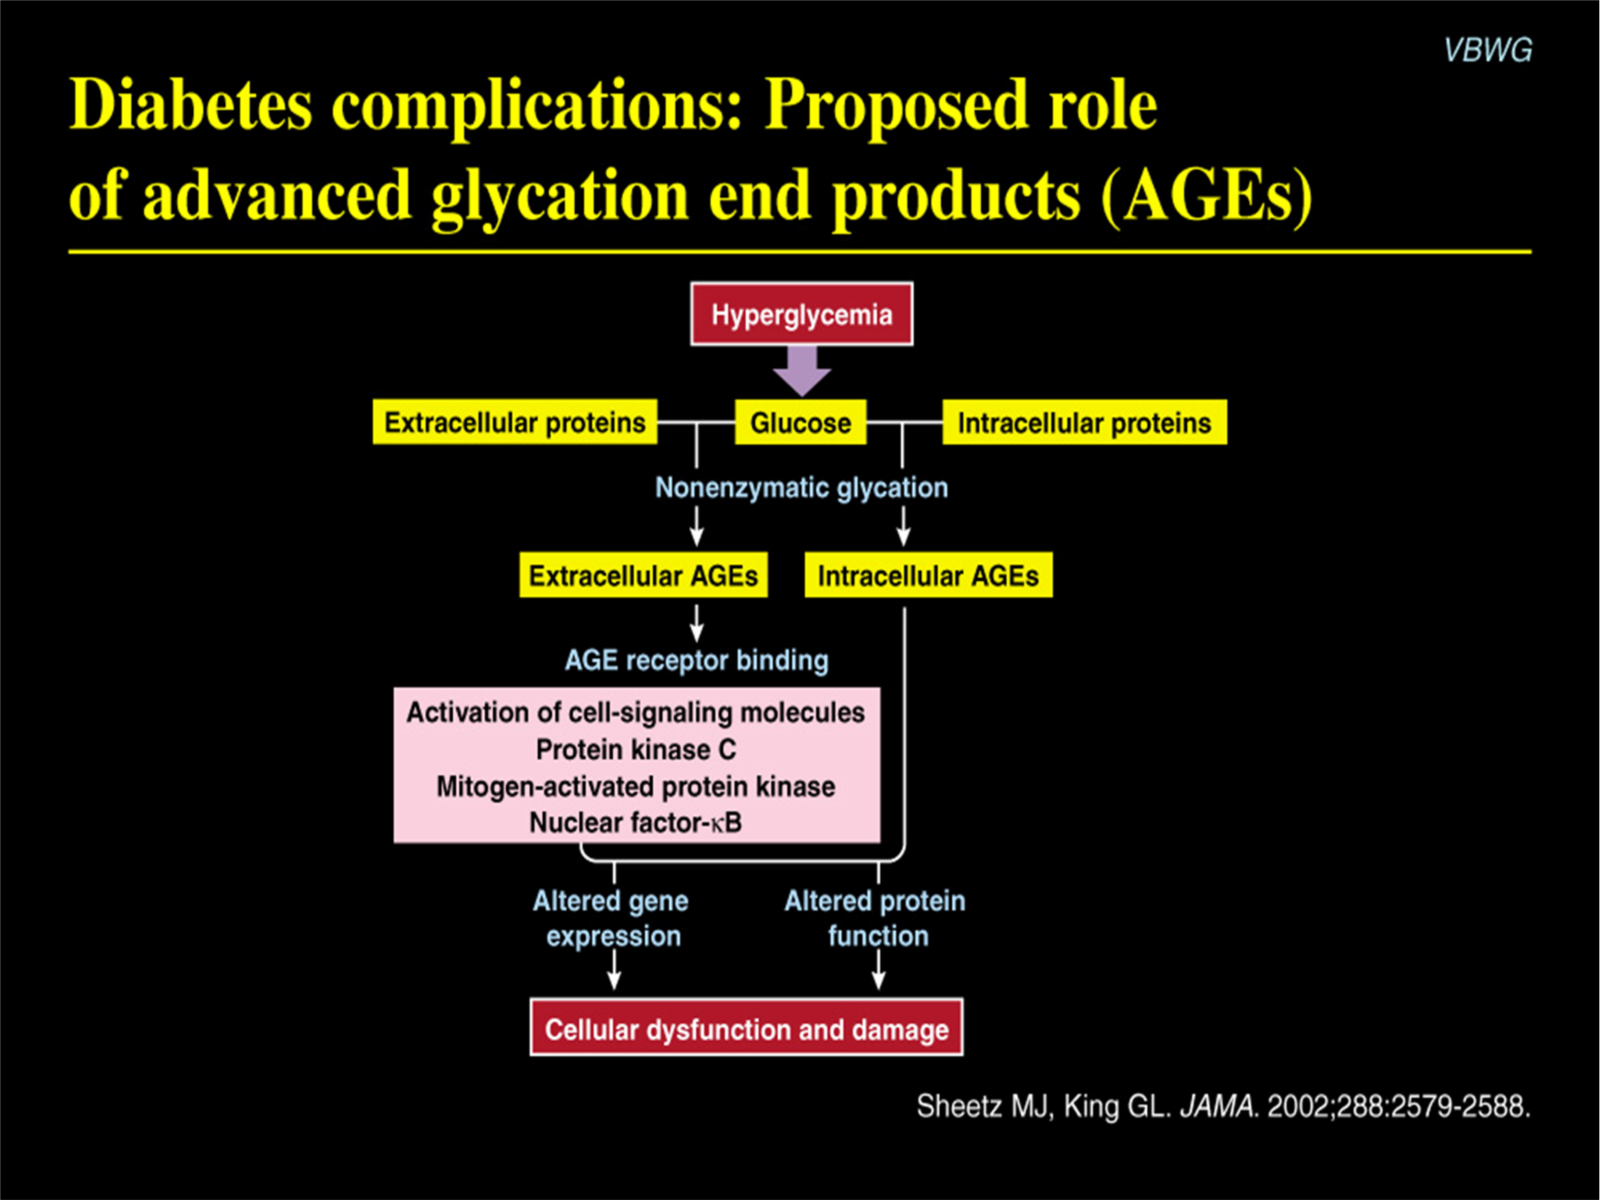 The Role of Advanced Glycation End Products in Diabetes and Heart Disease